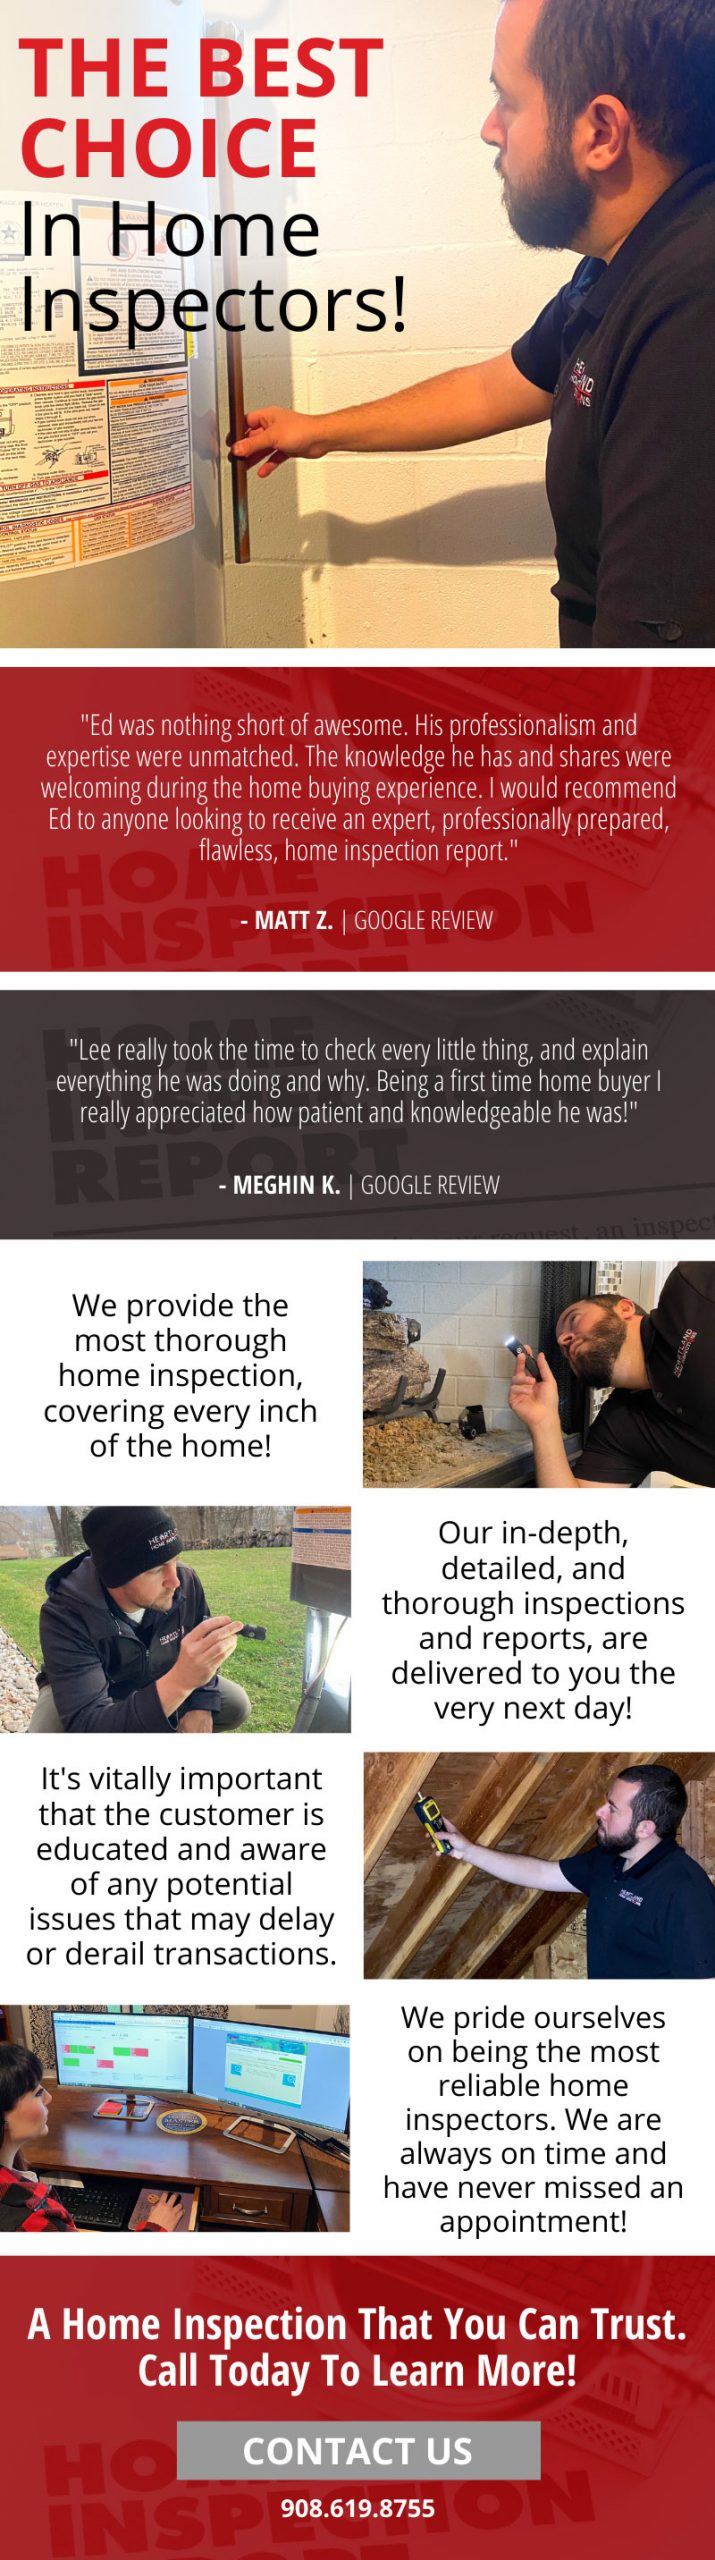 The Most Reliable Home Inspectors! 🏠 3